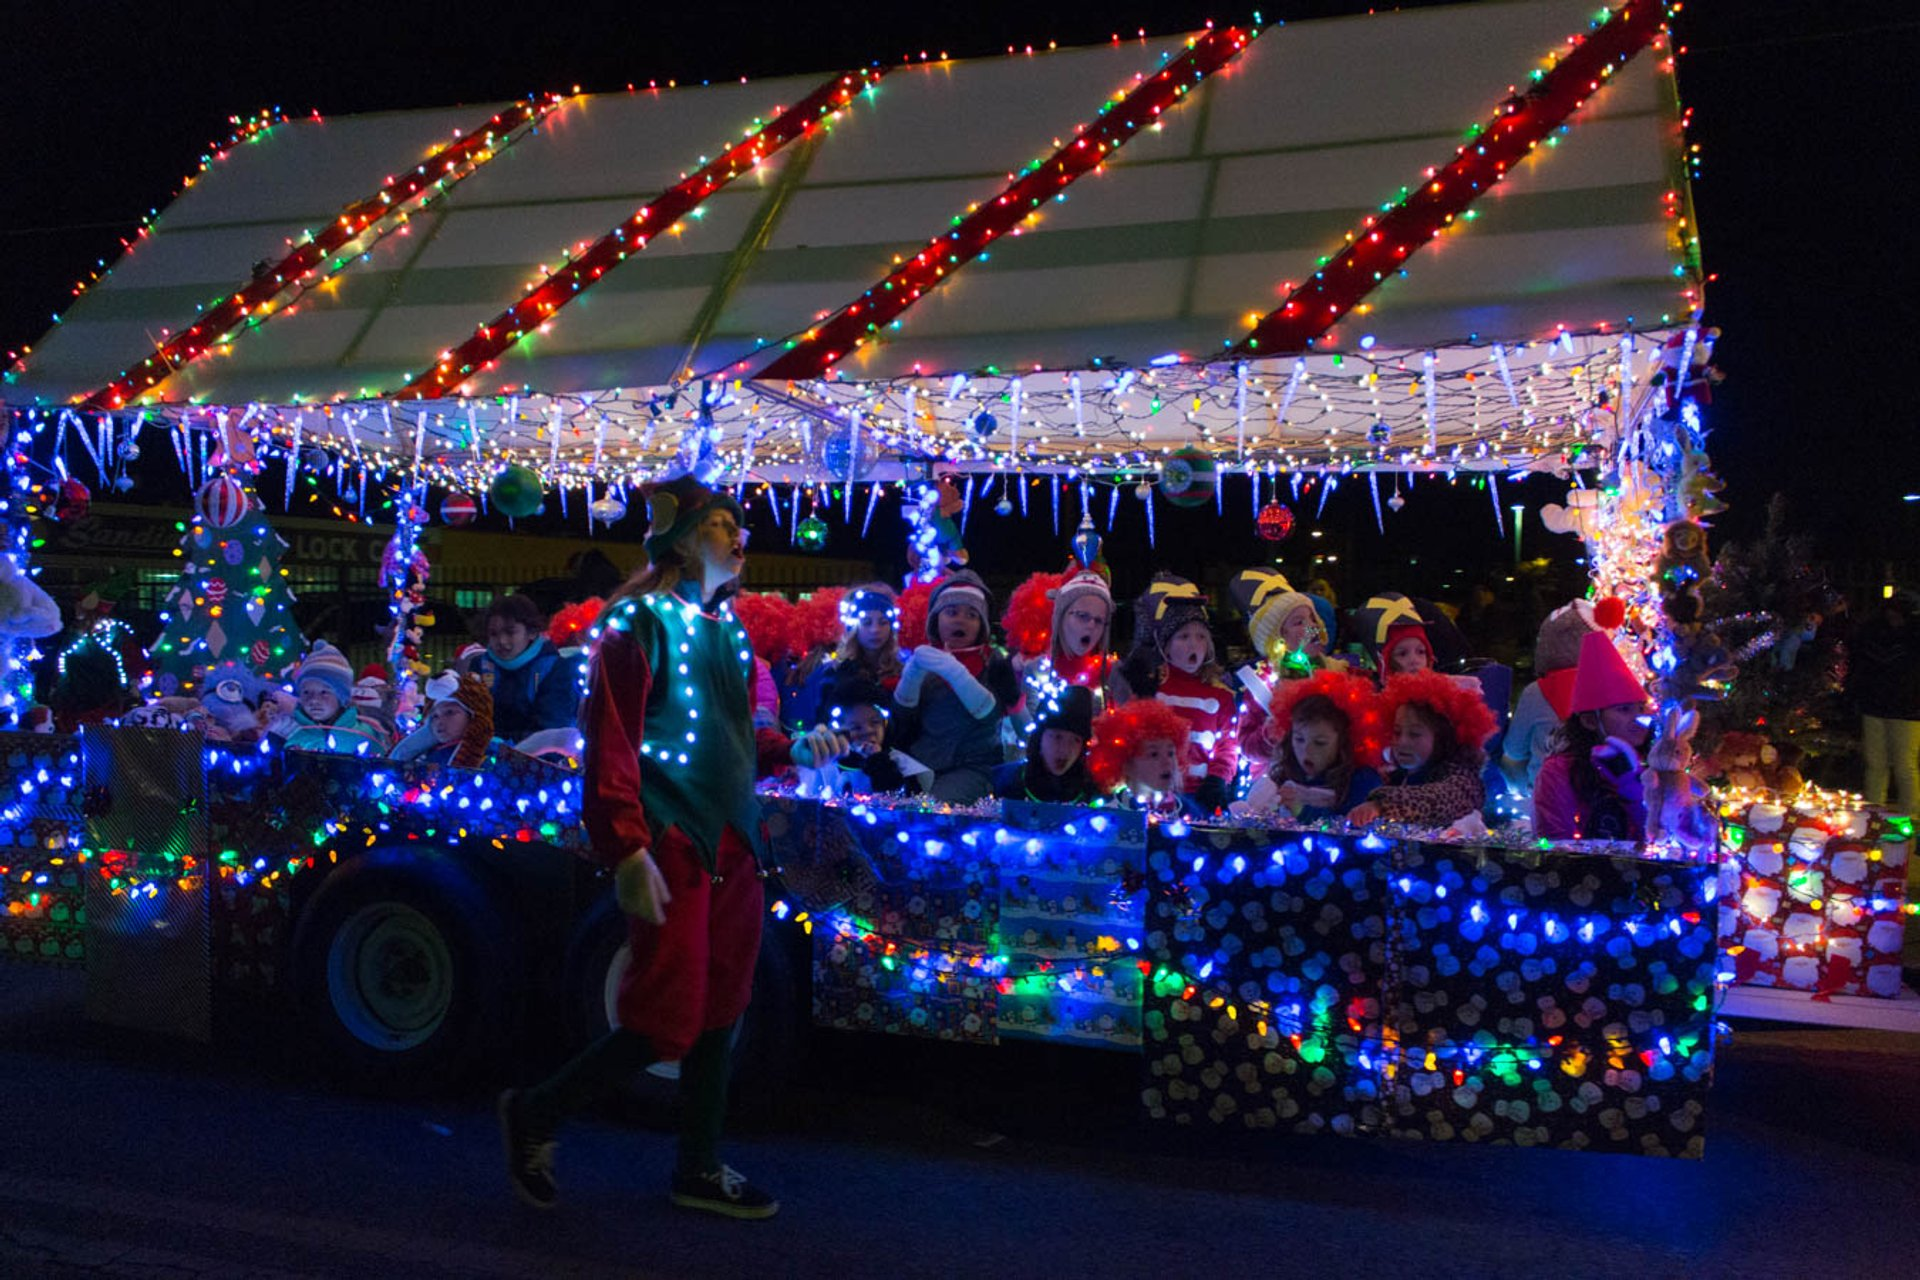 Best time for Twinkle Light Parade in Albuquerque in New Mexico 2020